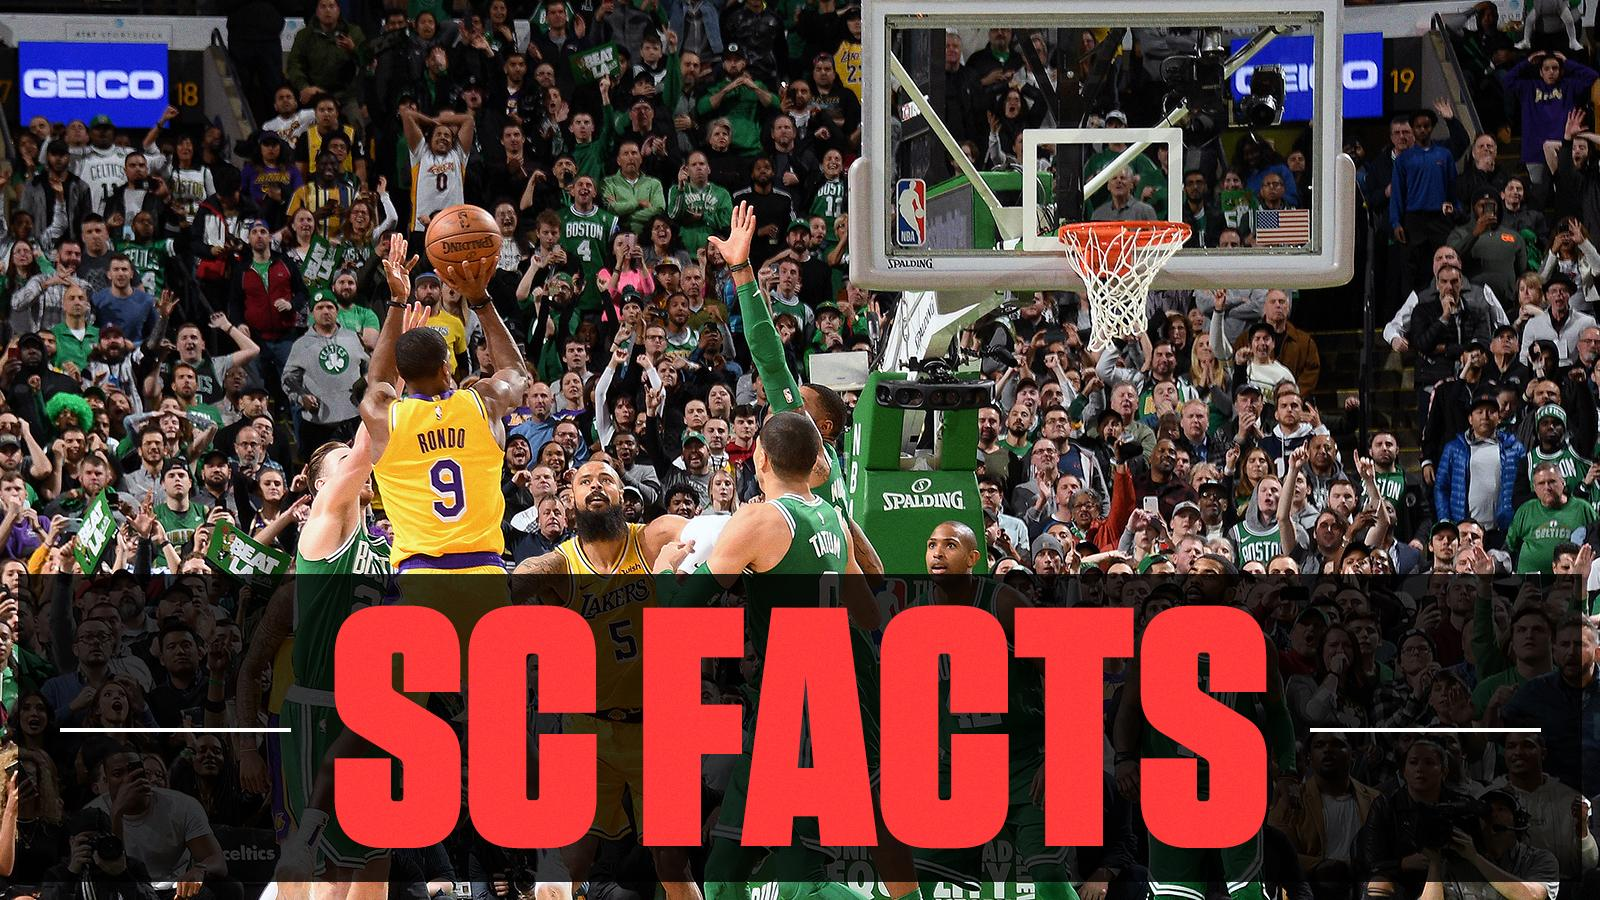 Rajon Rondo made his 1st career buzzer-beater tonight. #SCFacts https://t.co/Qe99q8heFQ